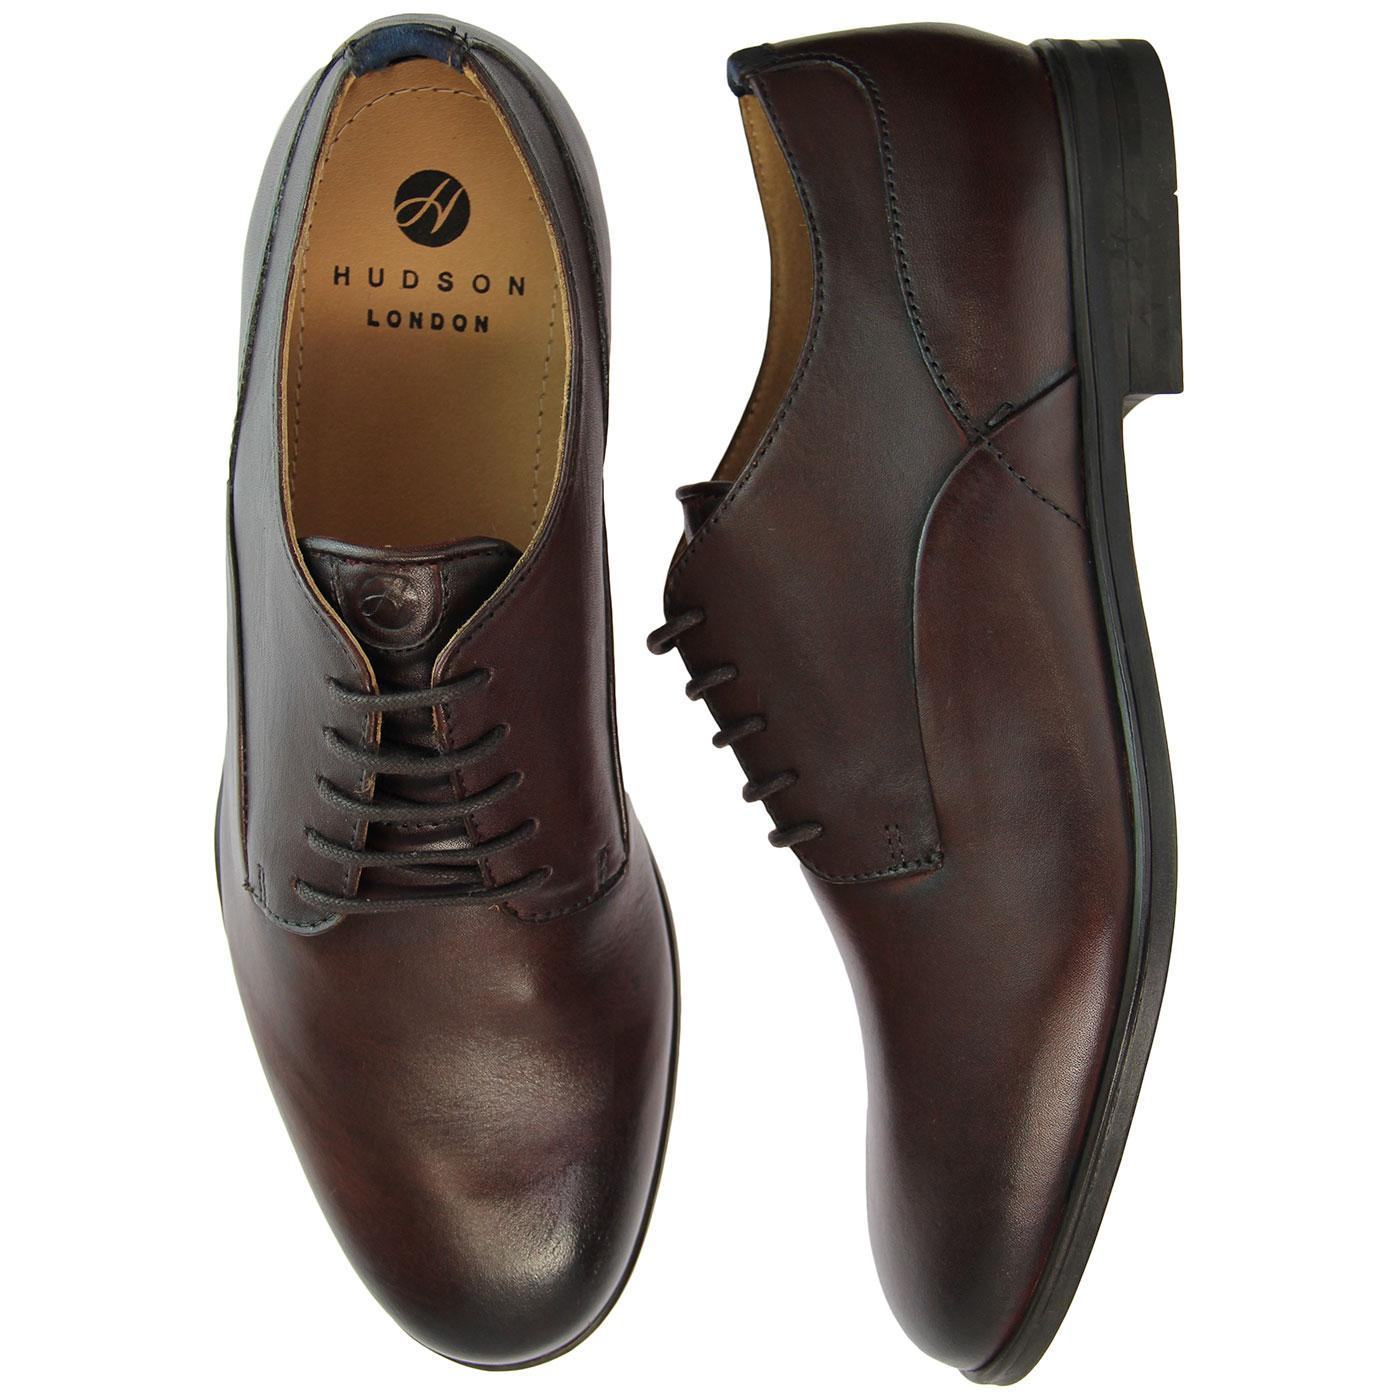 HUDSON Axminster 1960s Mod Leather Derby Shoes in Brown c004bdafa